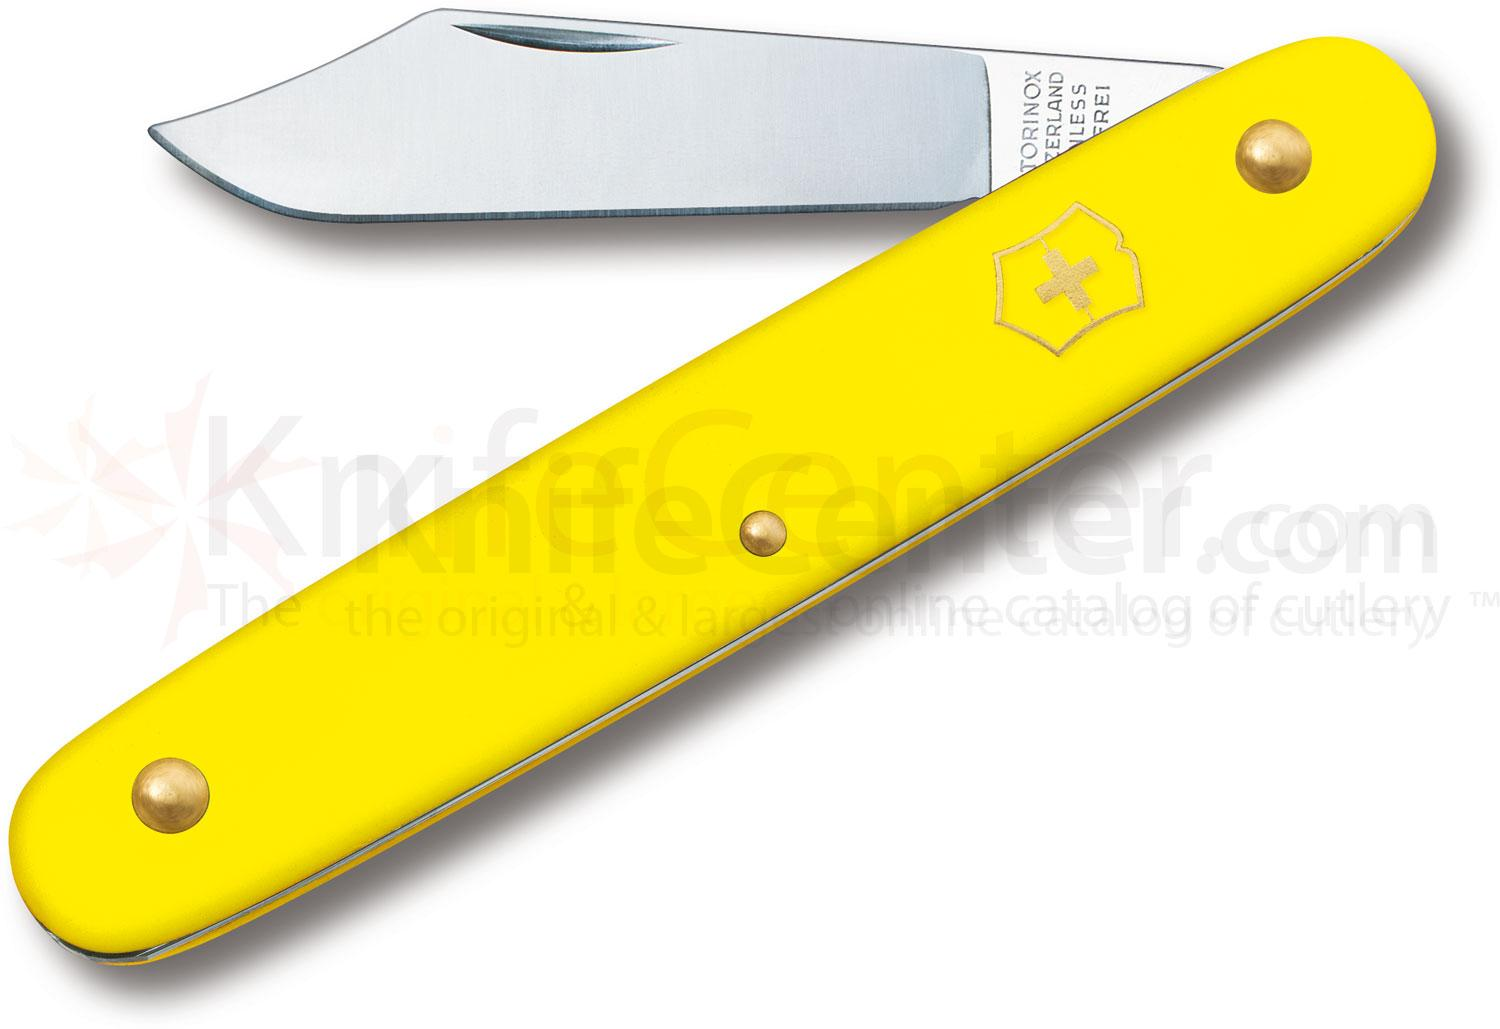 Victorinox Swiss Army Day Packer Utility Knife, 4 inch Yellow Handles